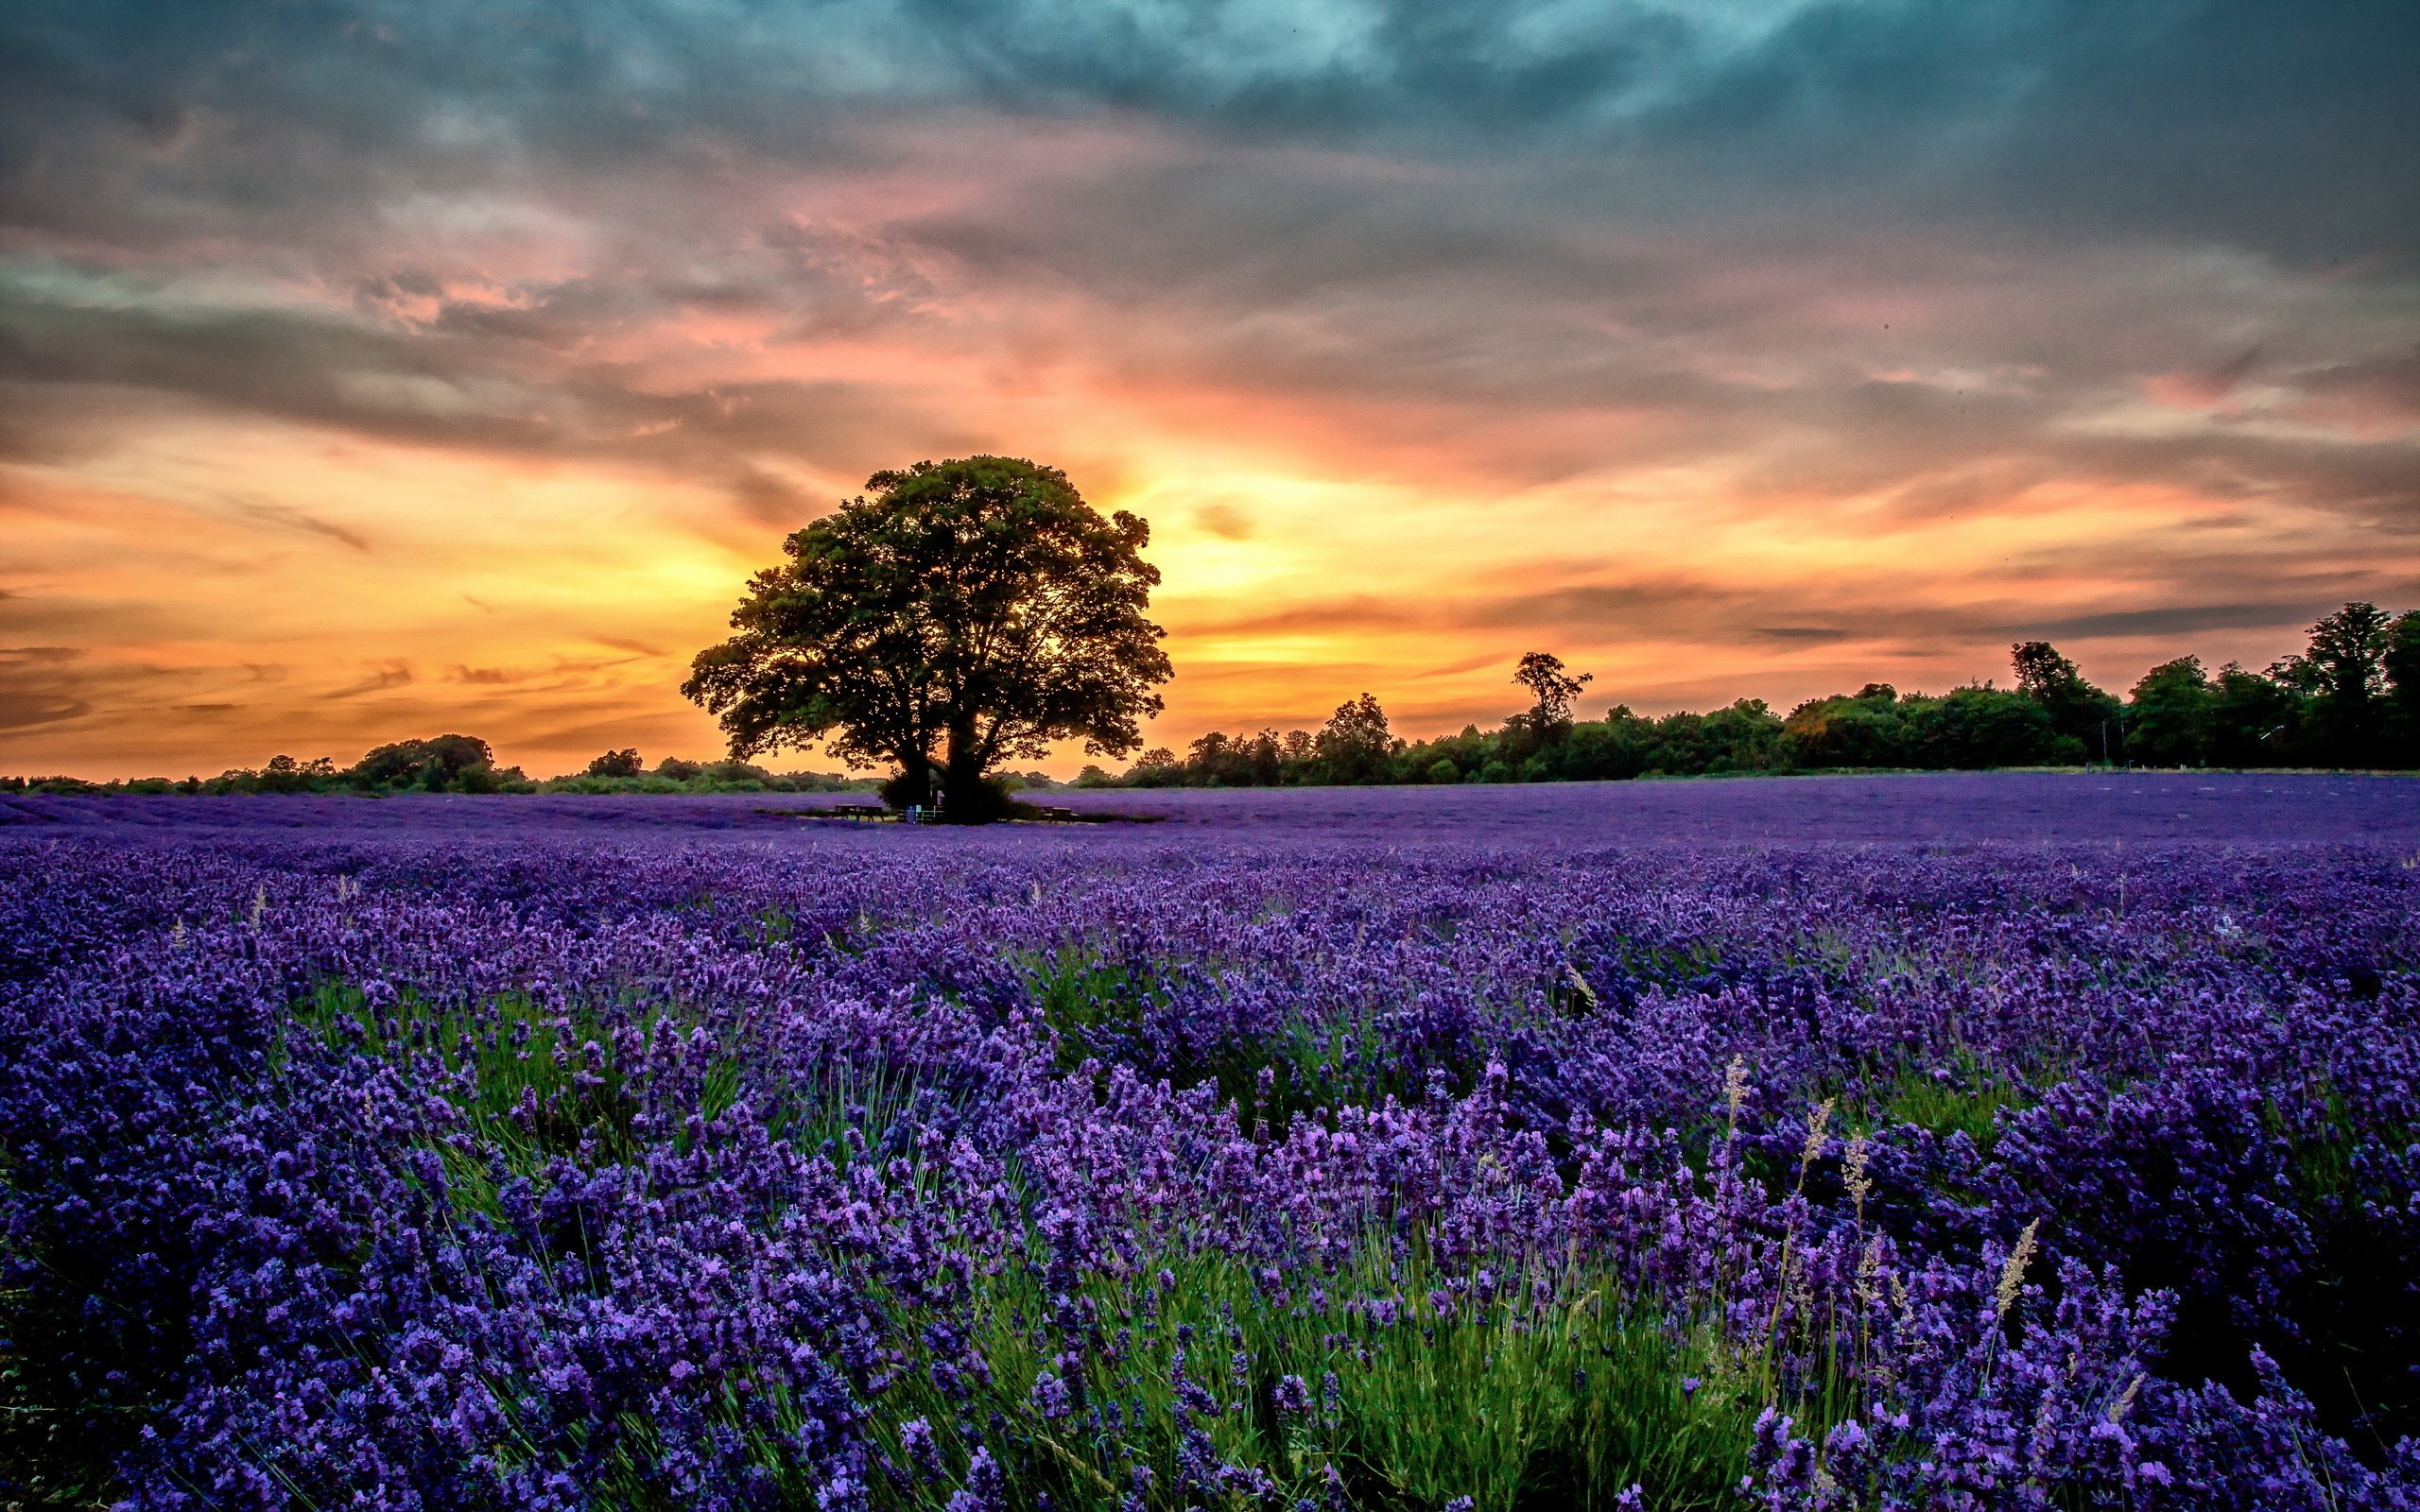 Flowers Sunset Field Lavender Scenery Wallpaper 2560x1600 356134 Wallpaperup